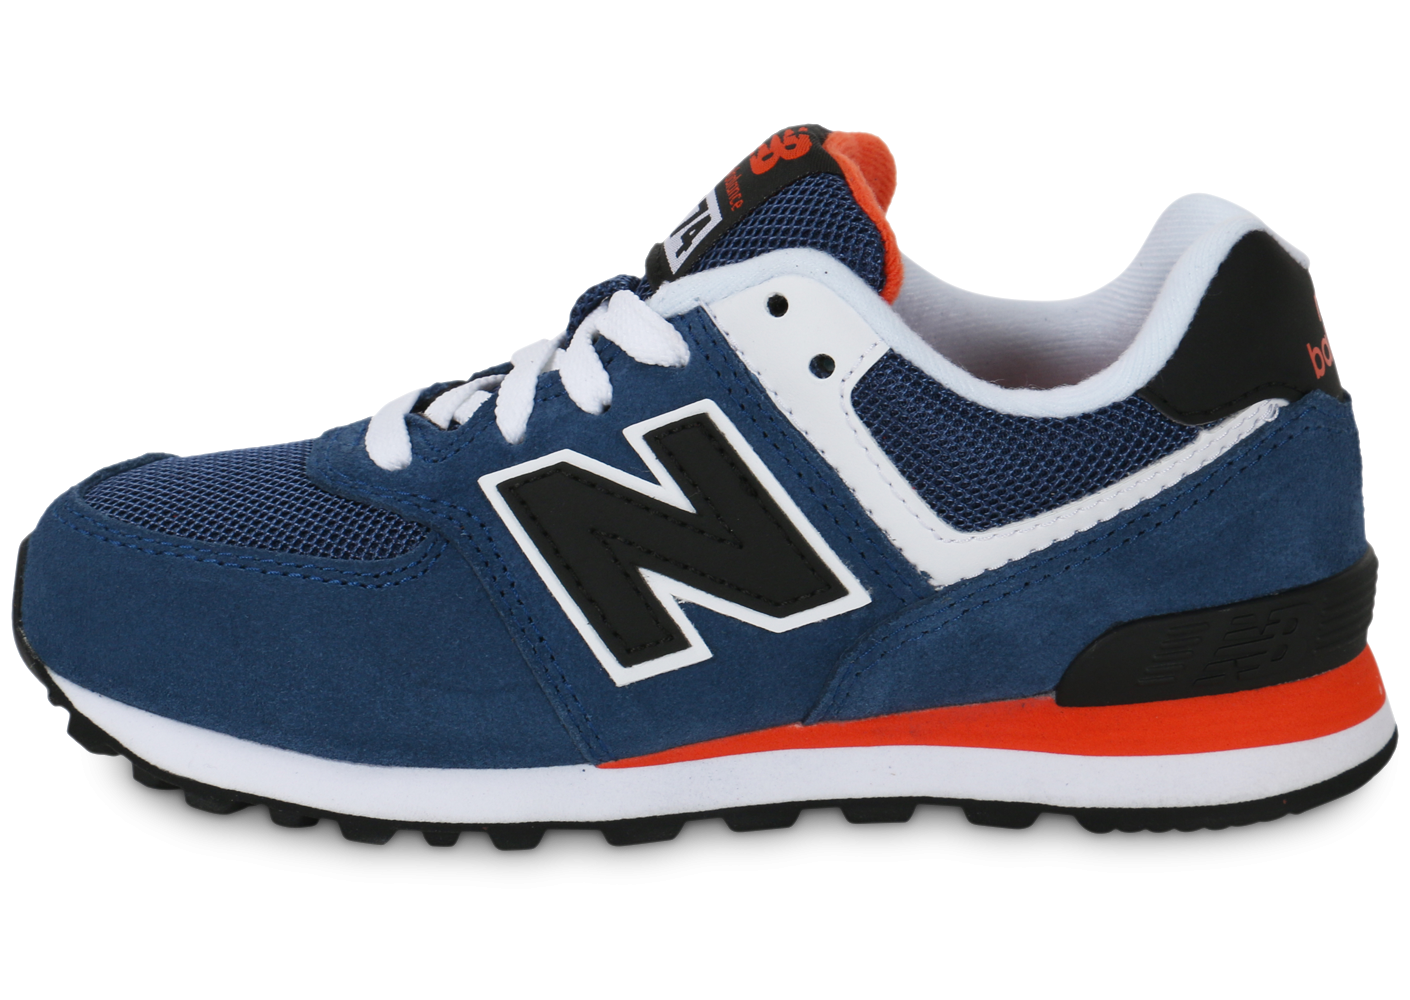 new balance noir lacet orange